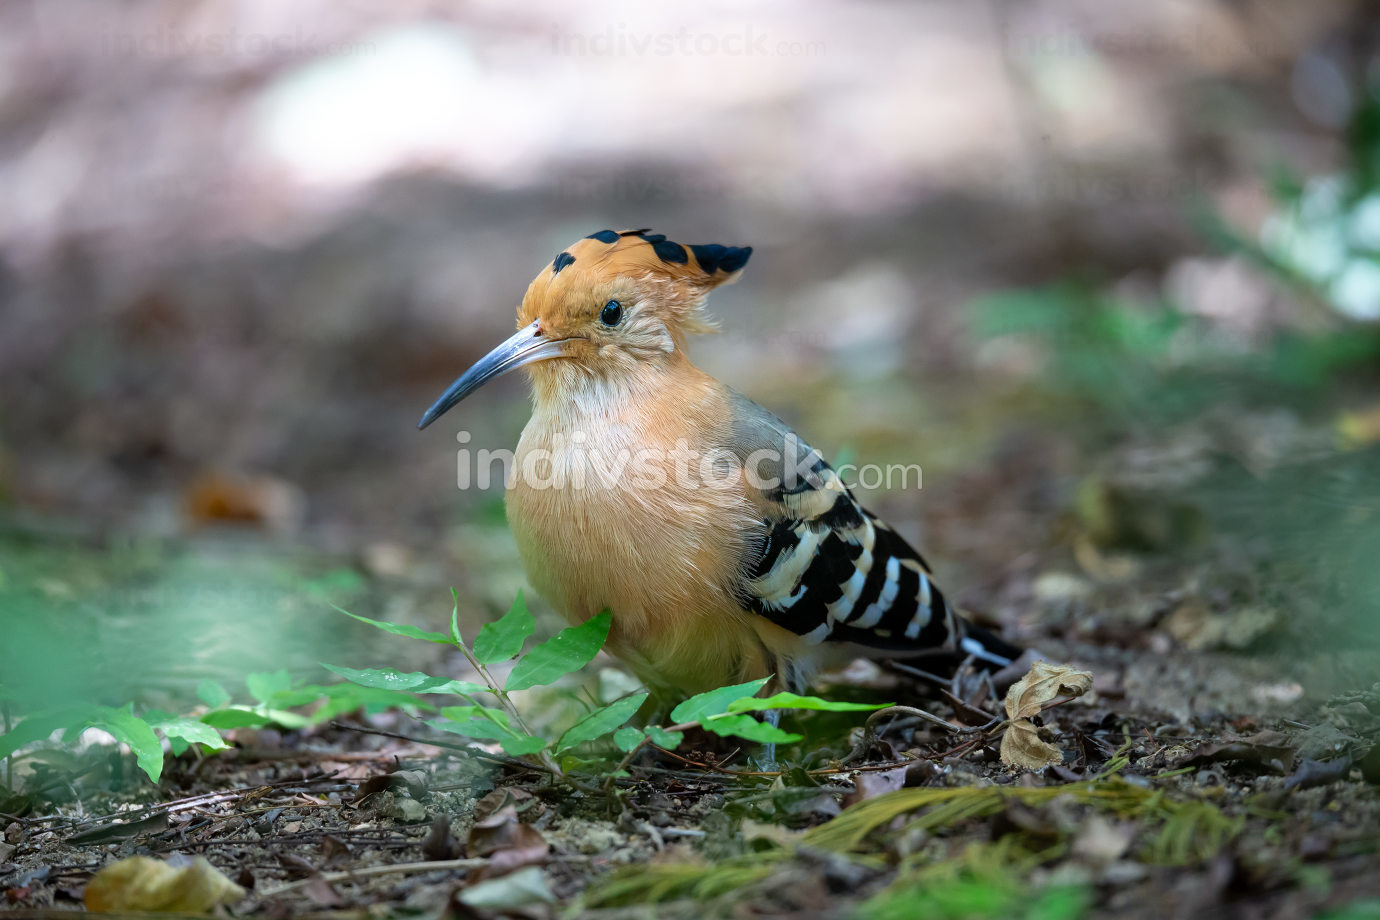 one endemic Madagascar hoopoe bird, with a colorful plumage